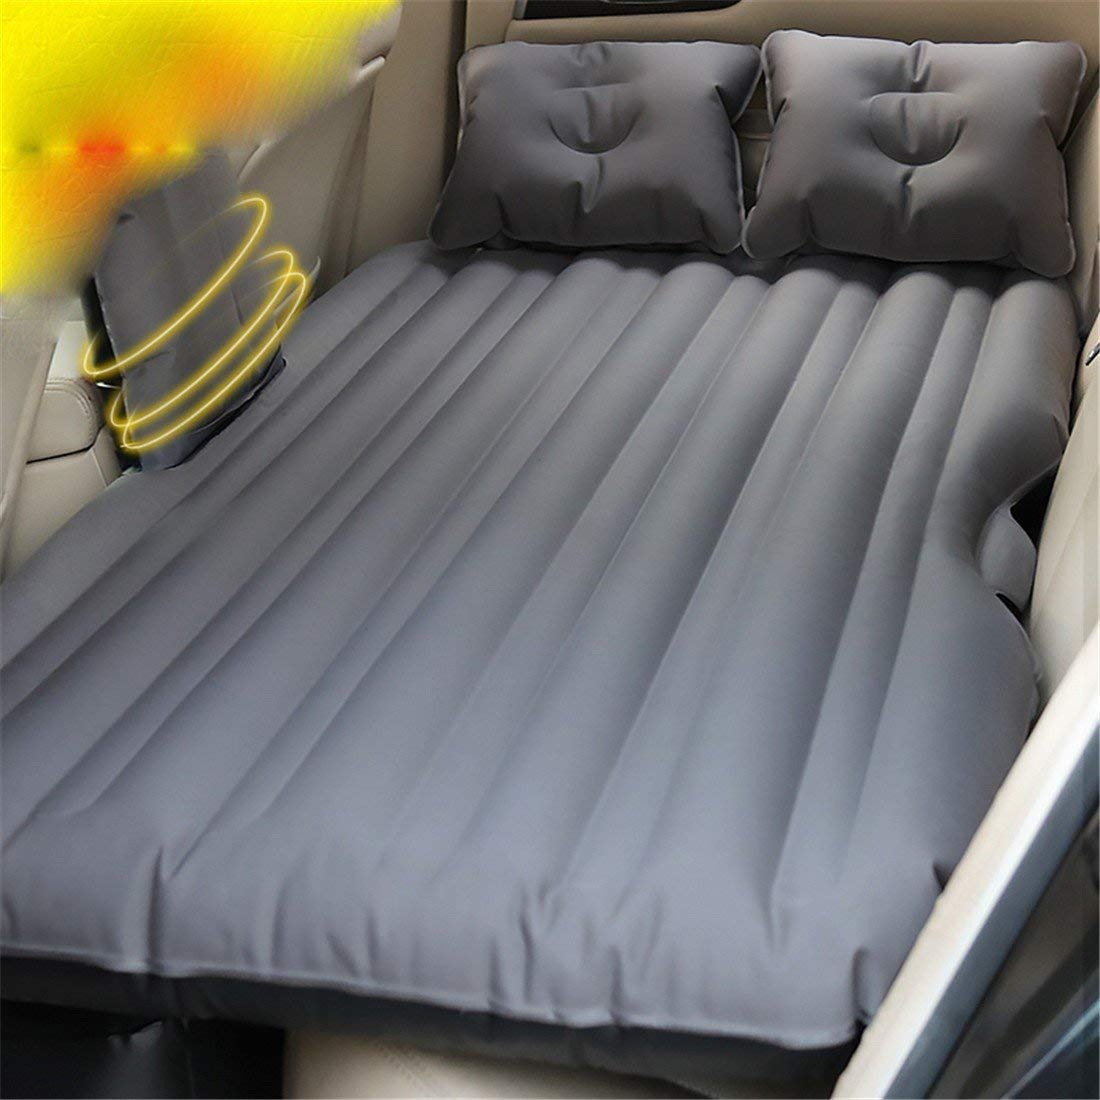 STAZSX Car inflatable bed adult travel bed cushion sleeping mattress